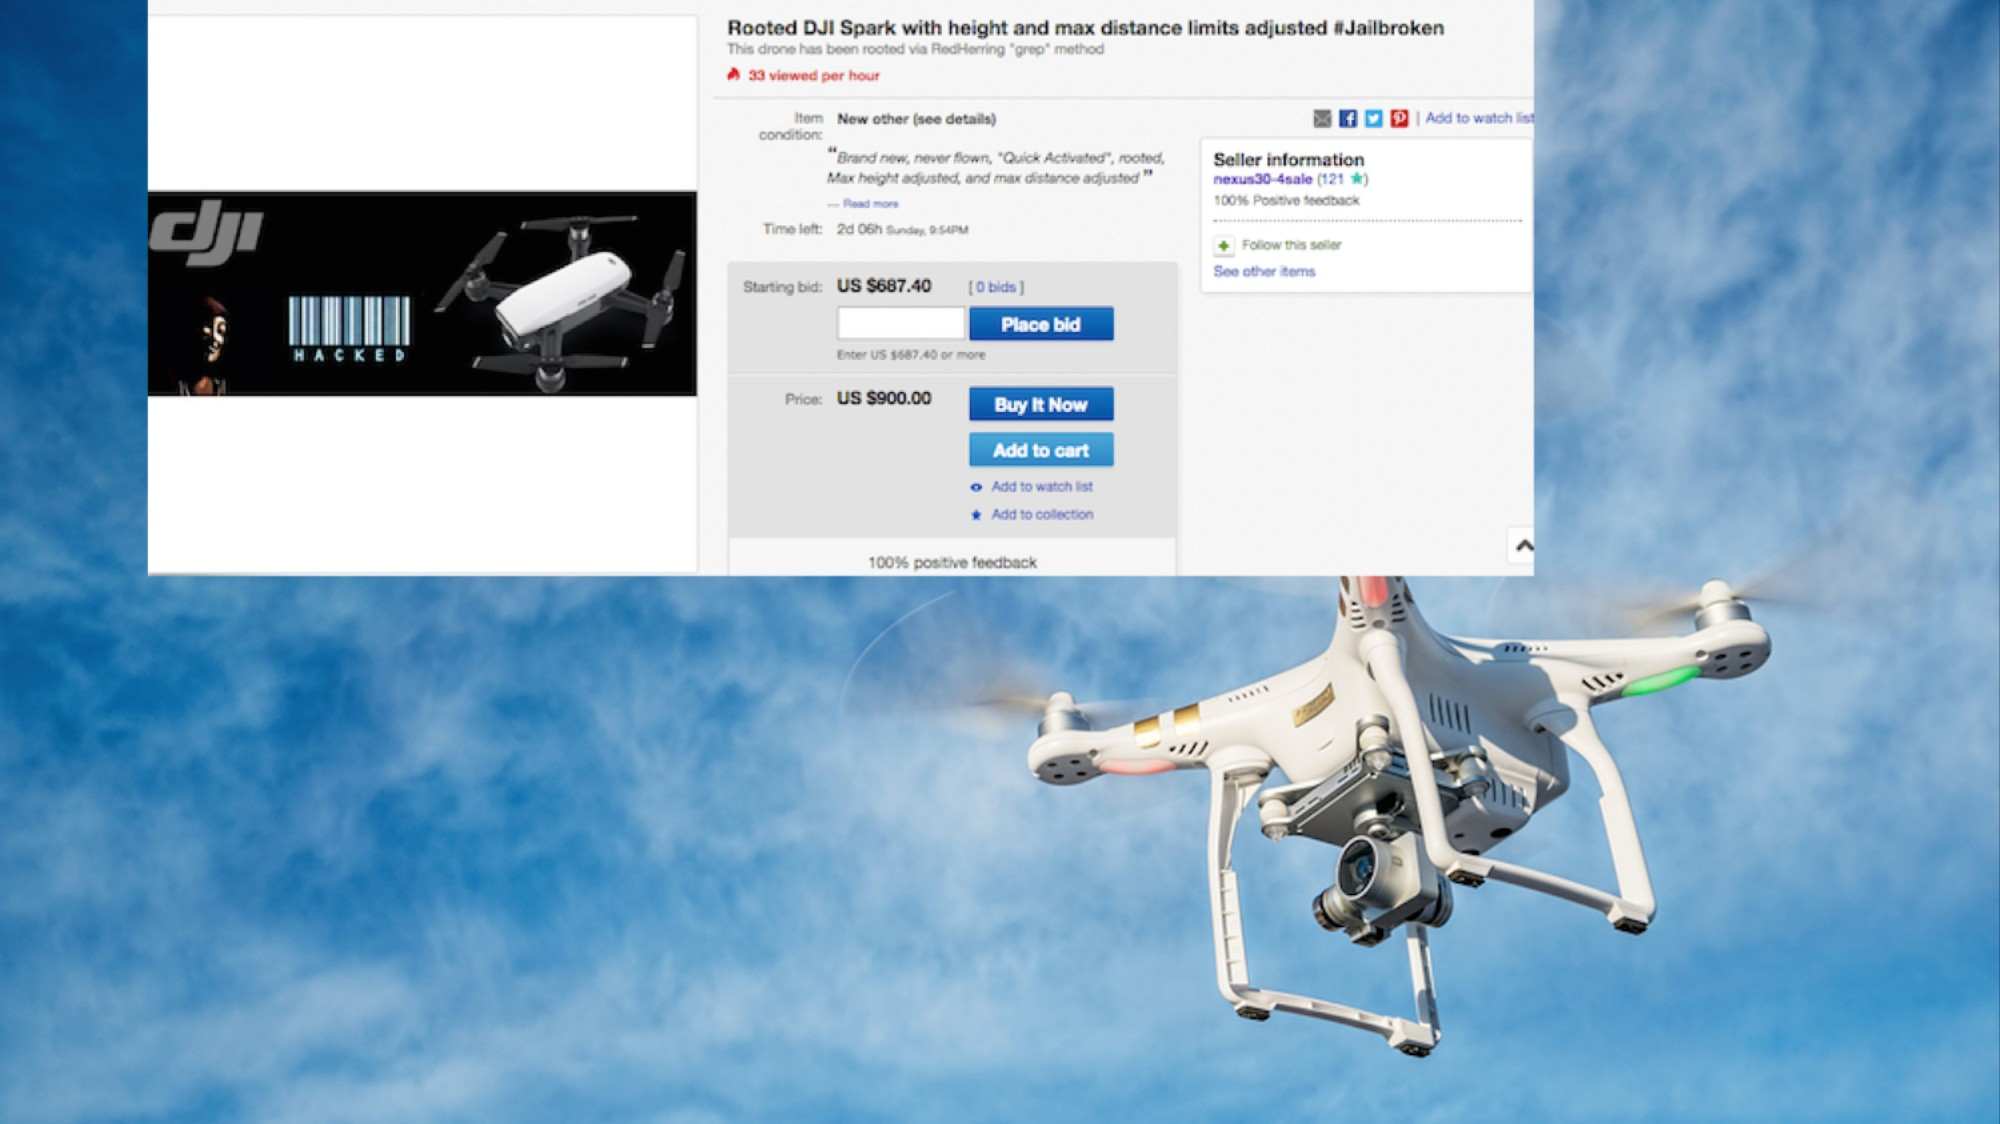 We Talked to the Guy Selling a Pre-Hacked Drone on eBay - VICE